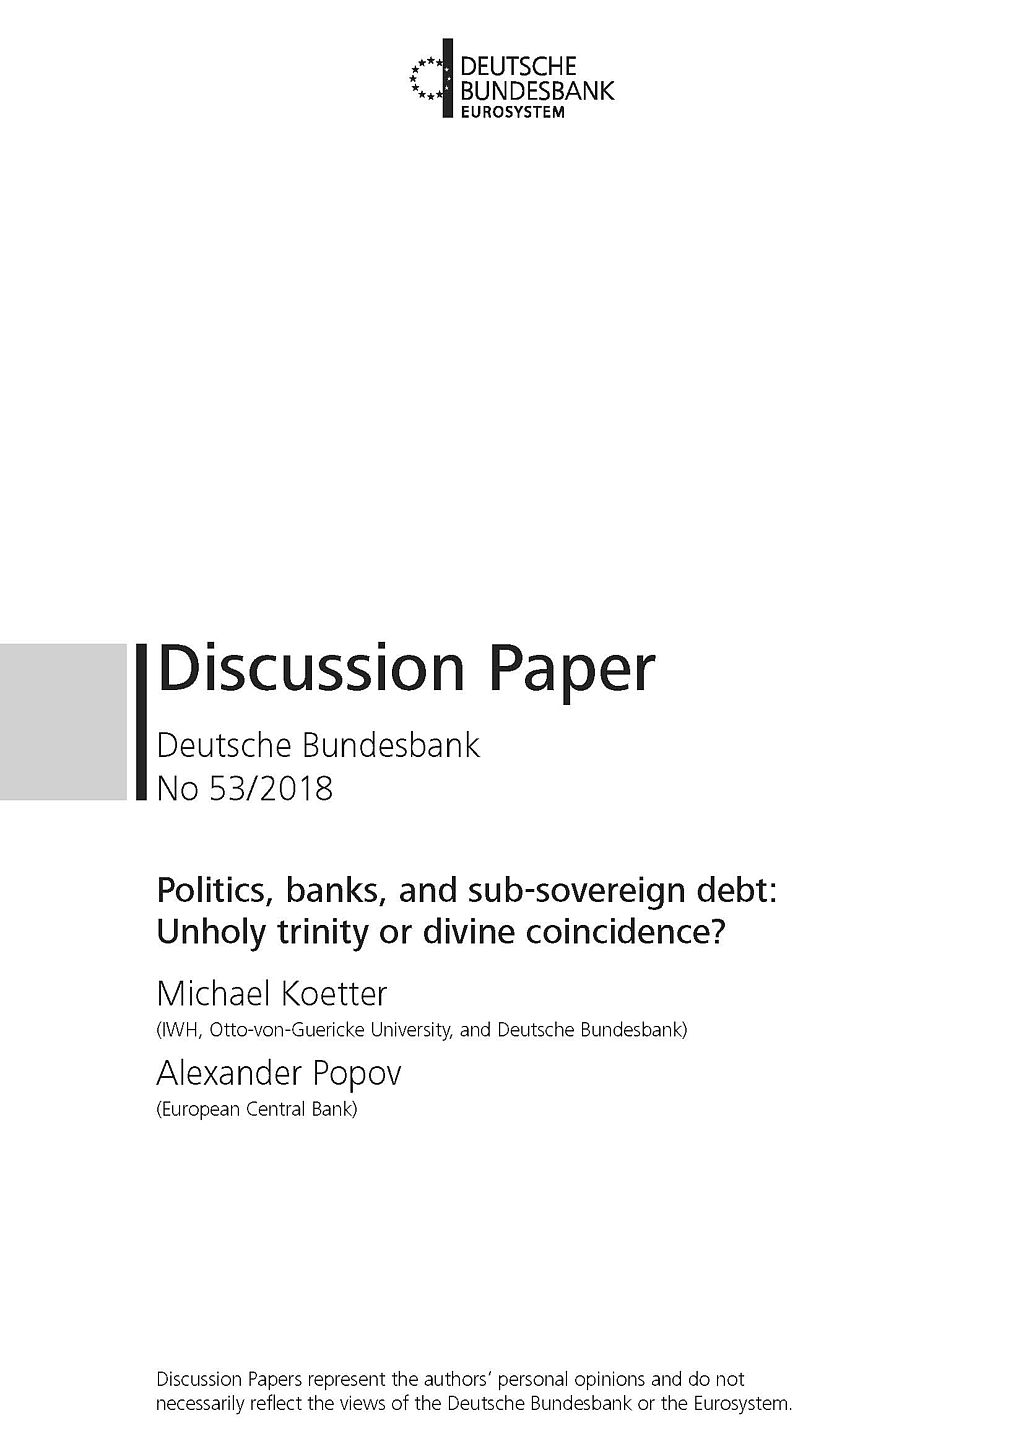 cover_Deutsche-Bundesbank-Discussion-Paper_2018-53.jpg